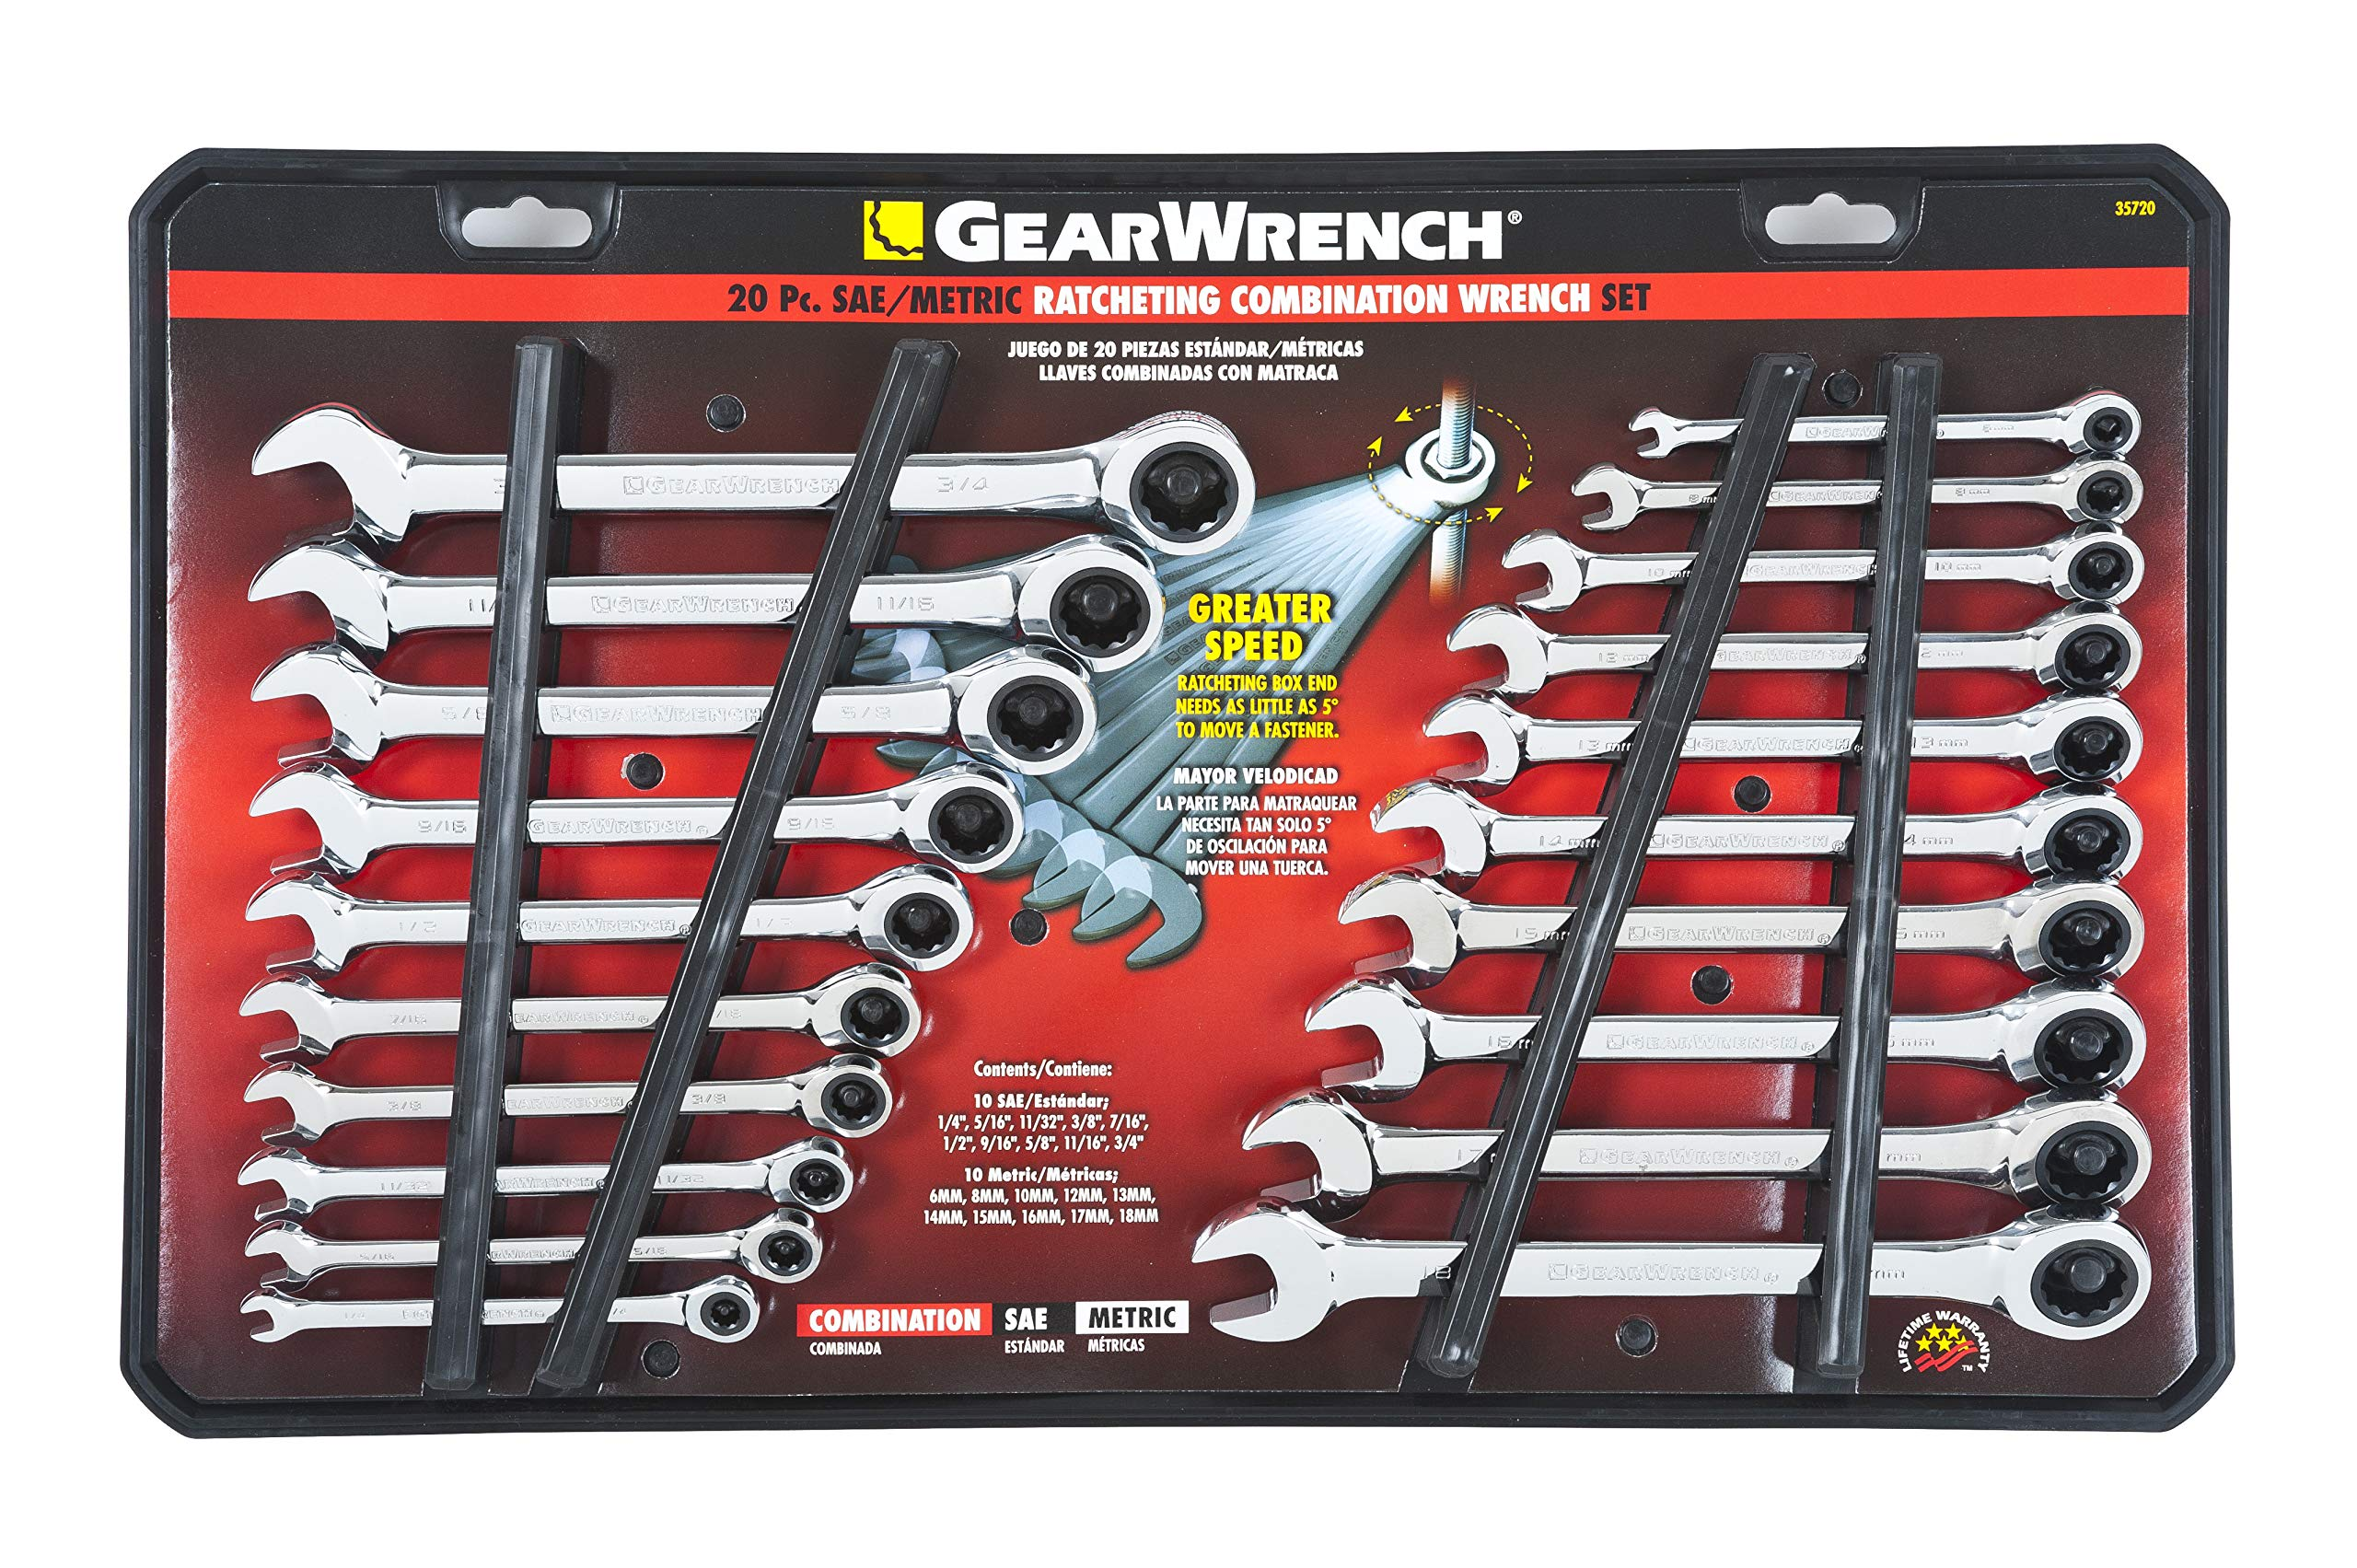 GEARWRENCH 20 Pc. Ratcheting Wrench Set, SAE/Metric - 35720 by GearWrench